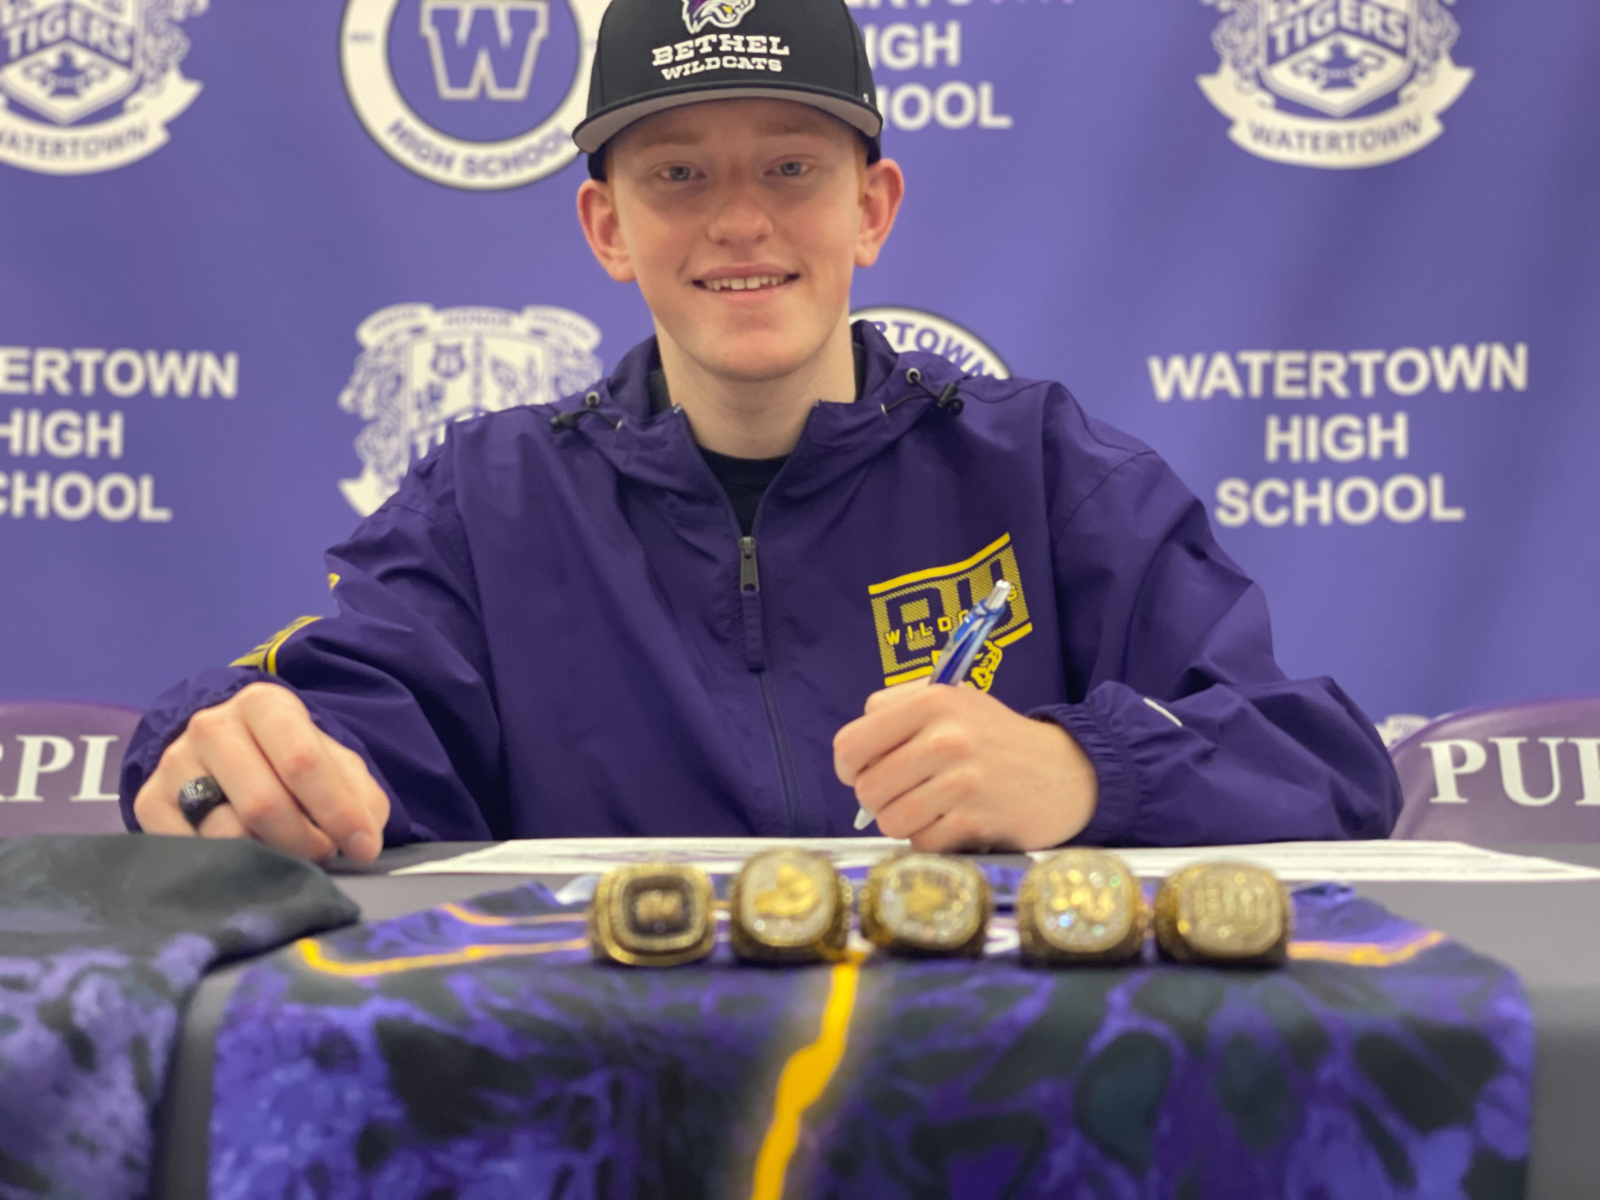 Watertown's Braden Leffew Signs with Fishing Powerhouse